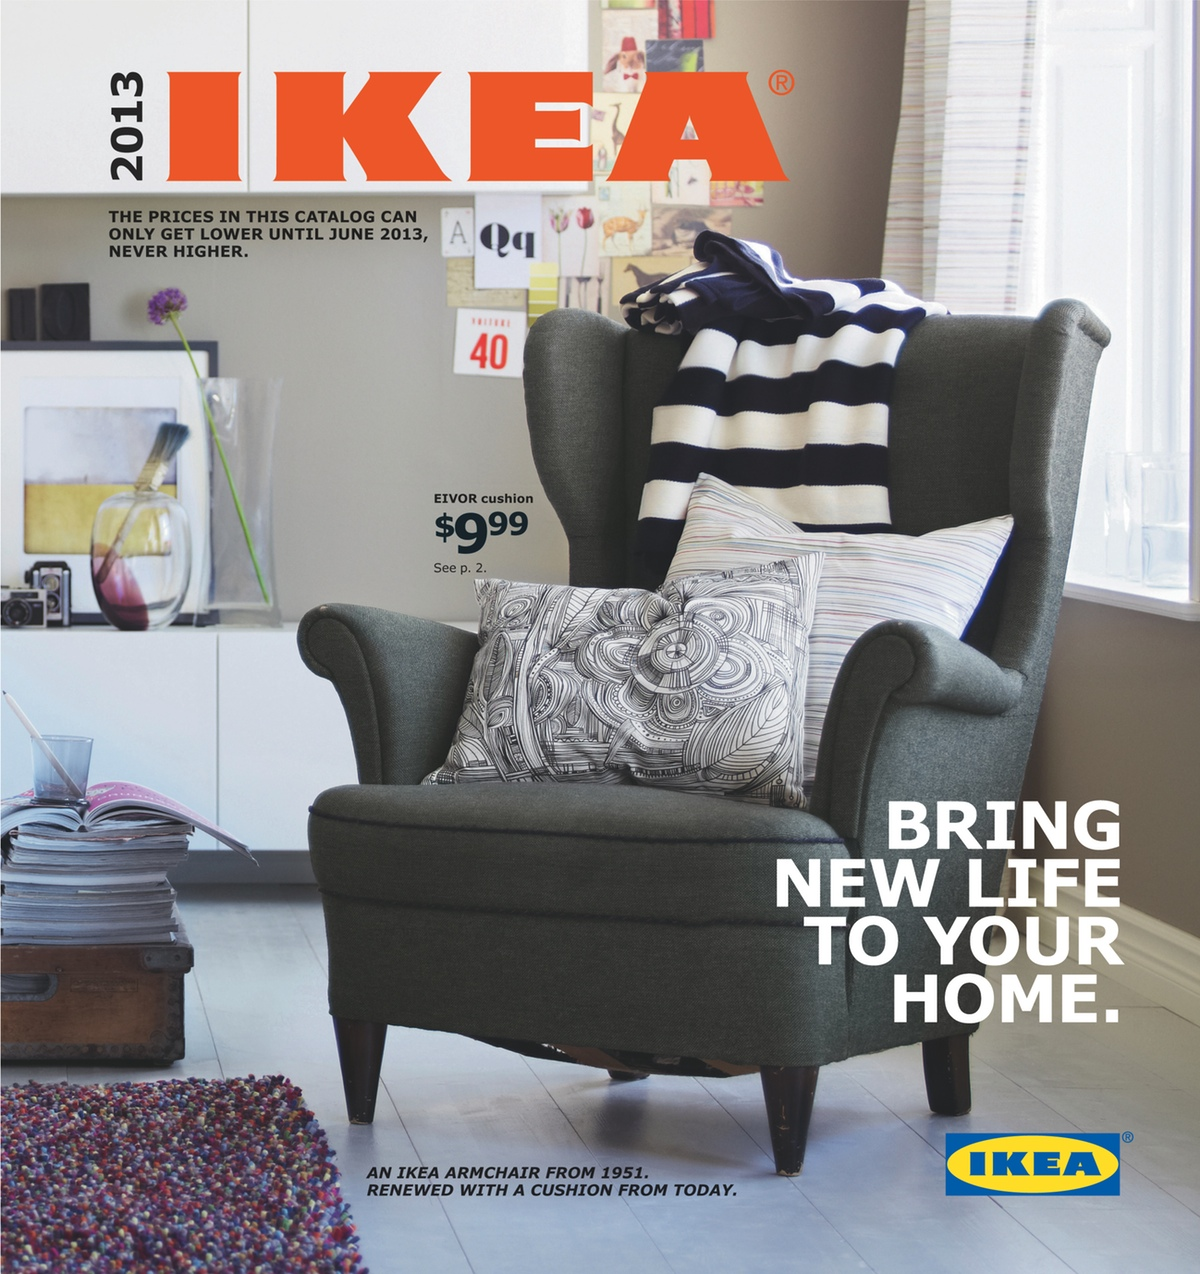 9808: To Ikea Or Not To Ikea